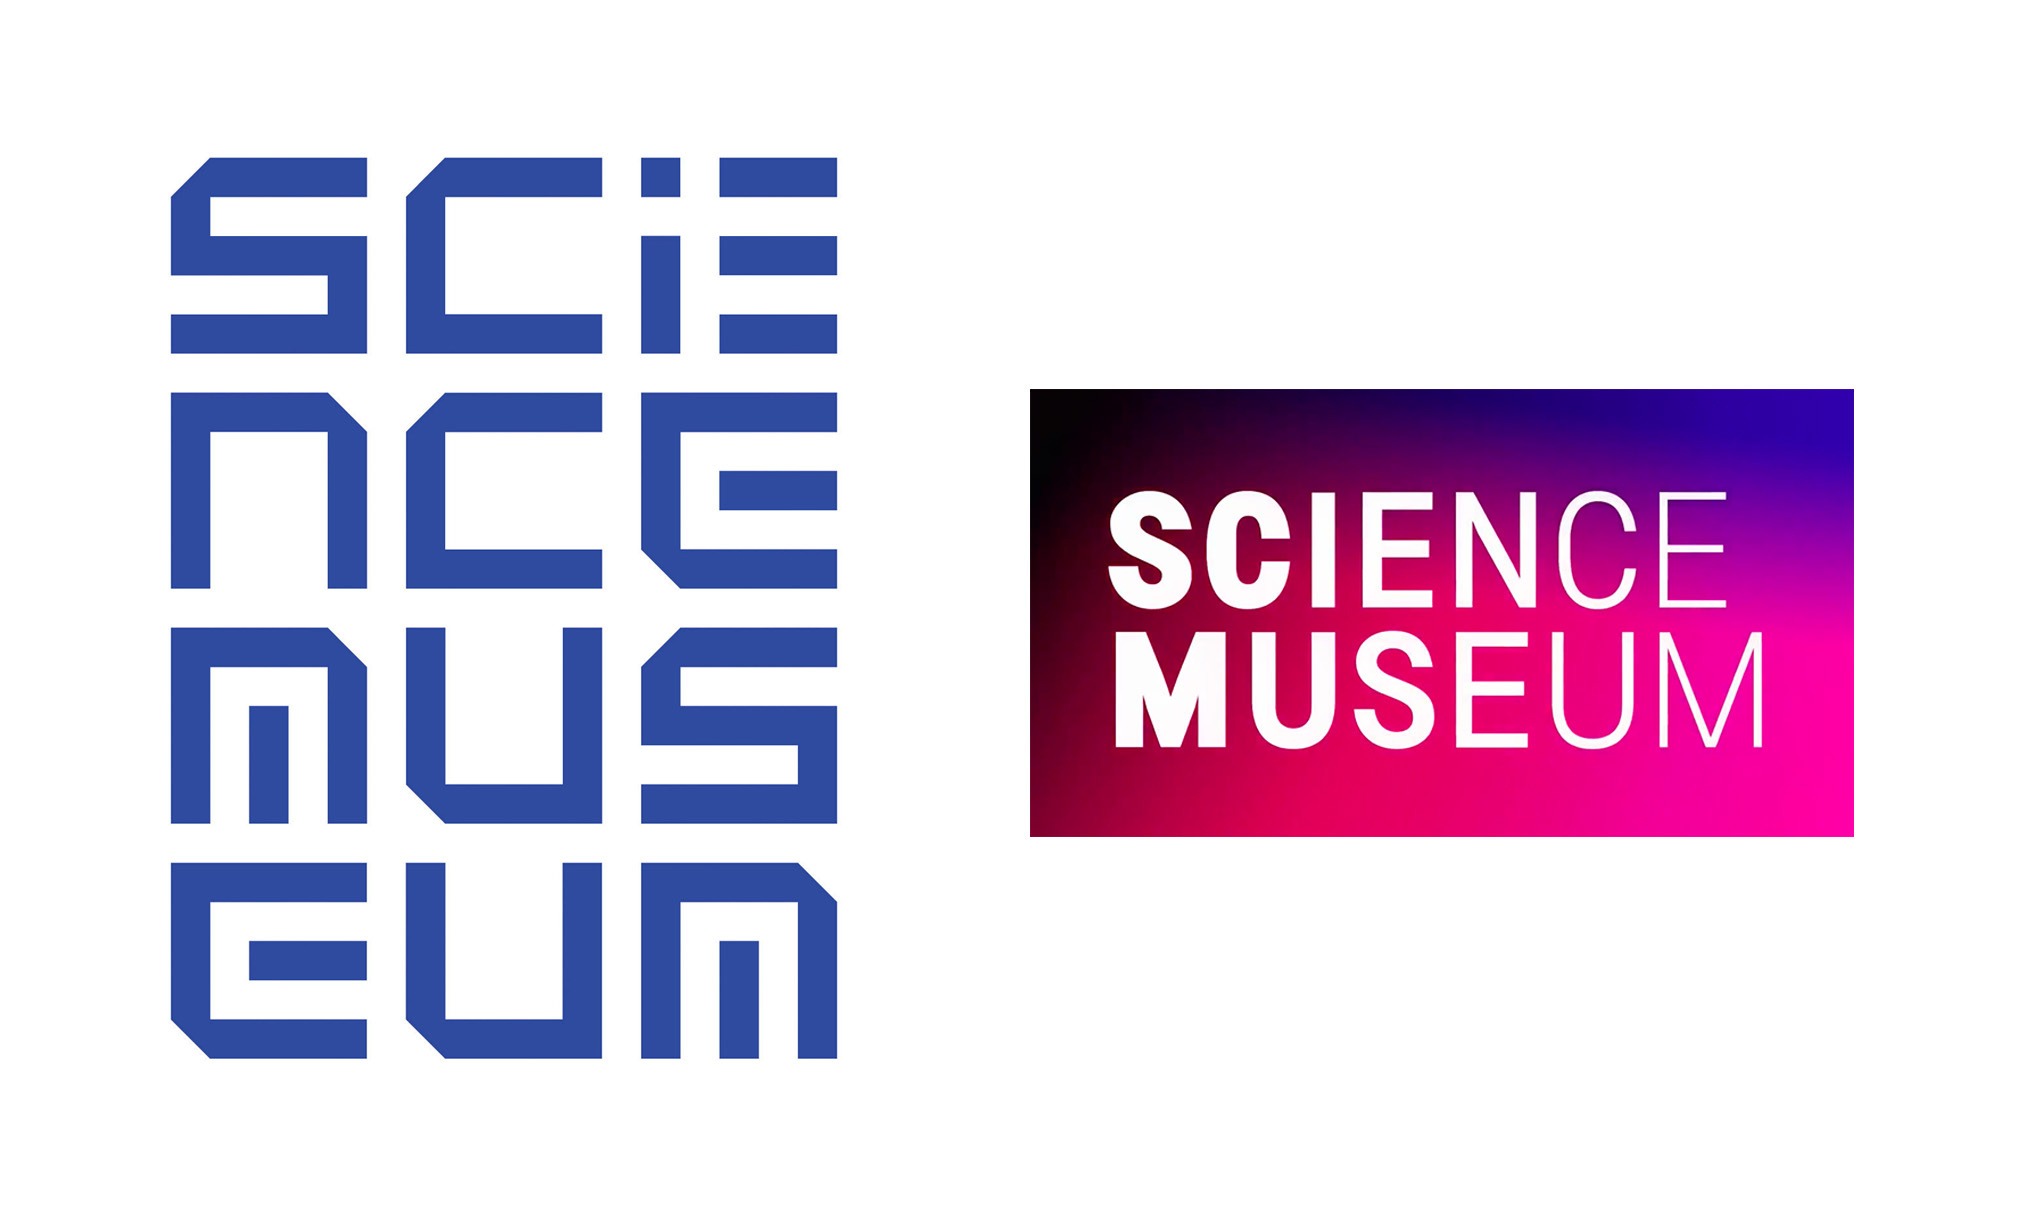 Johnson Banks responds to Science Museum rebrand